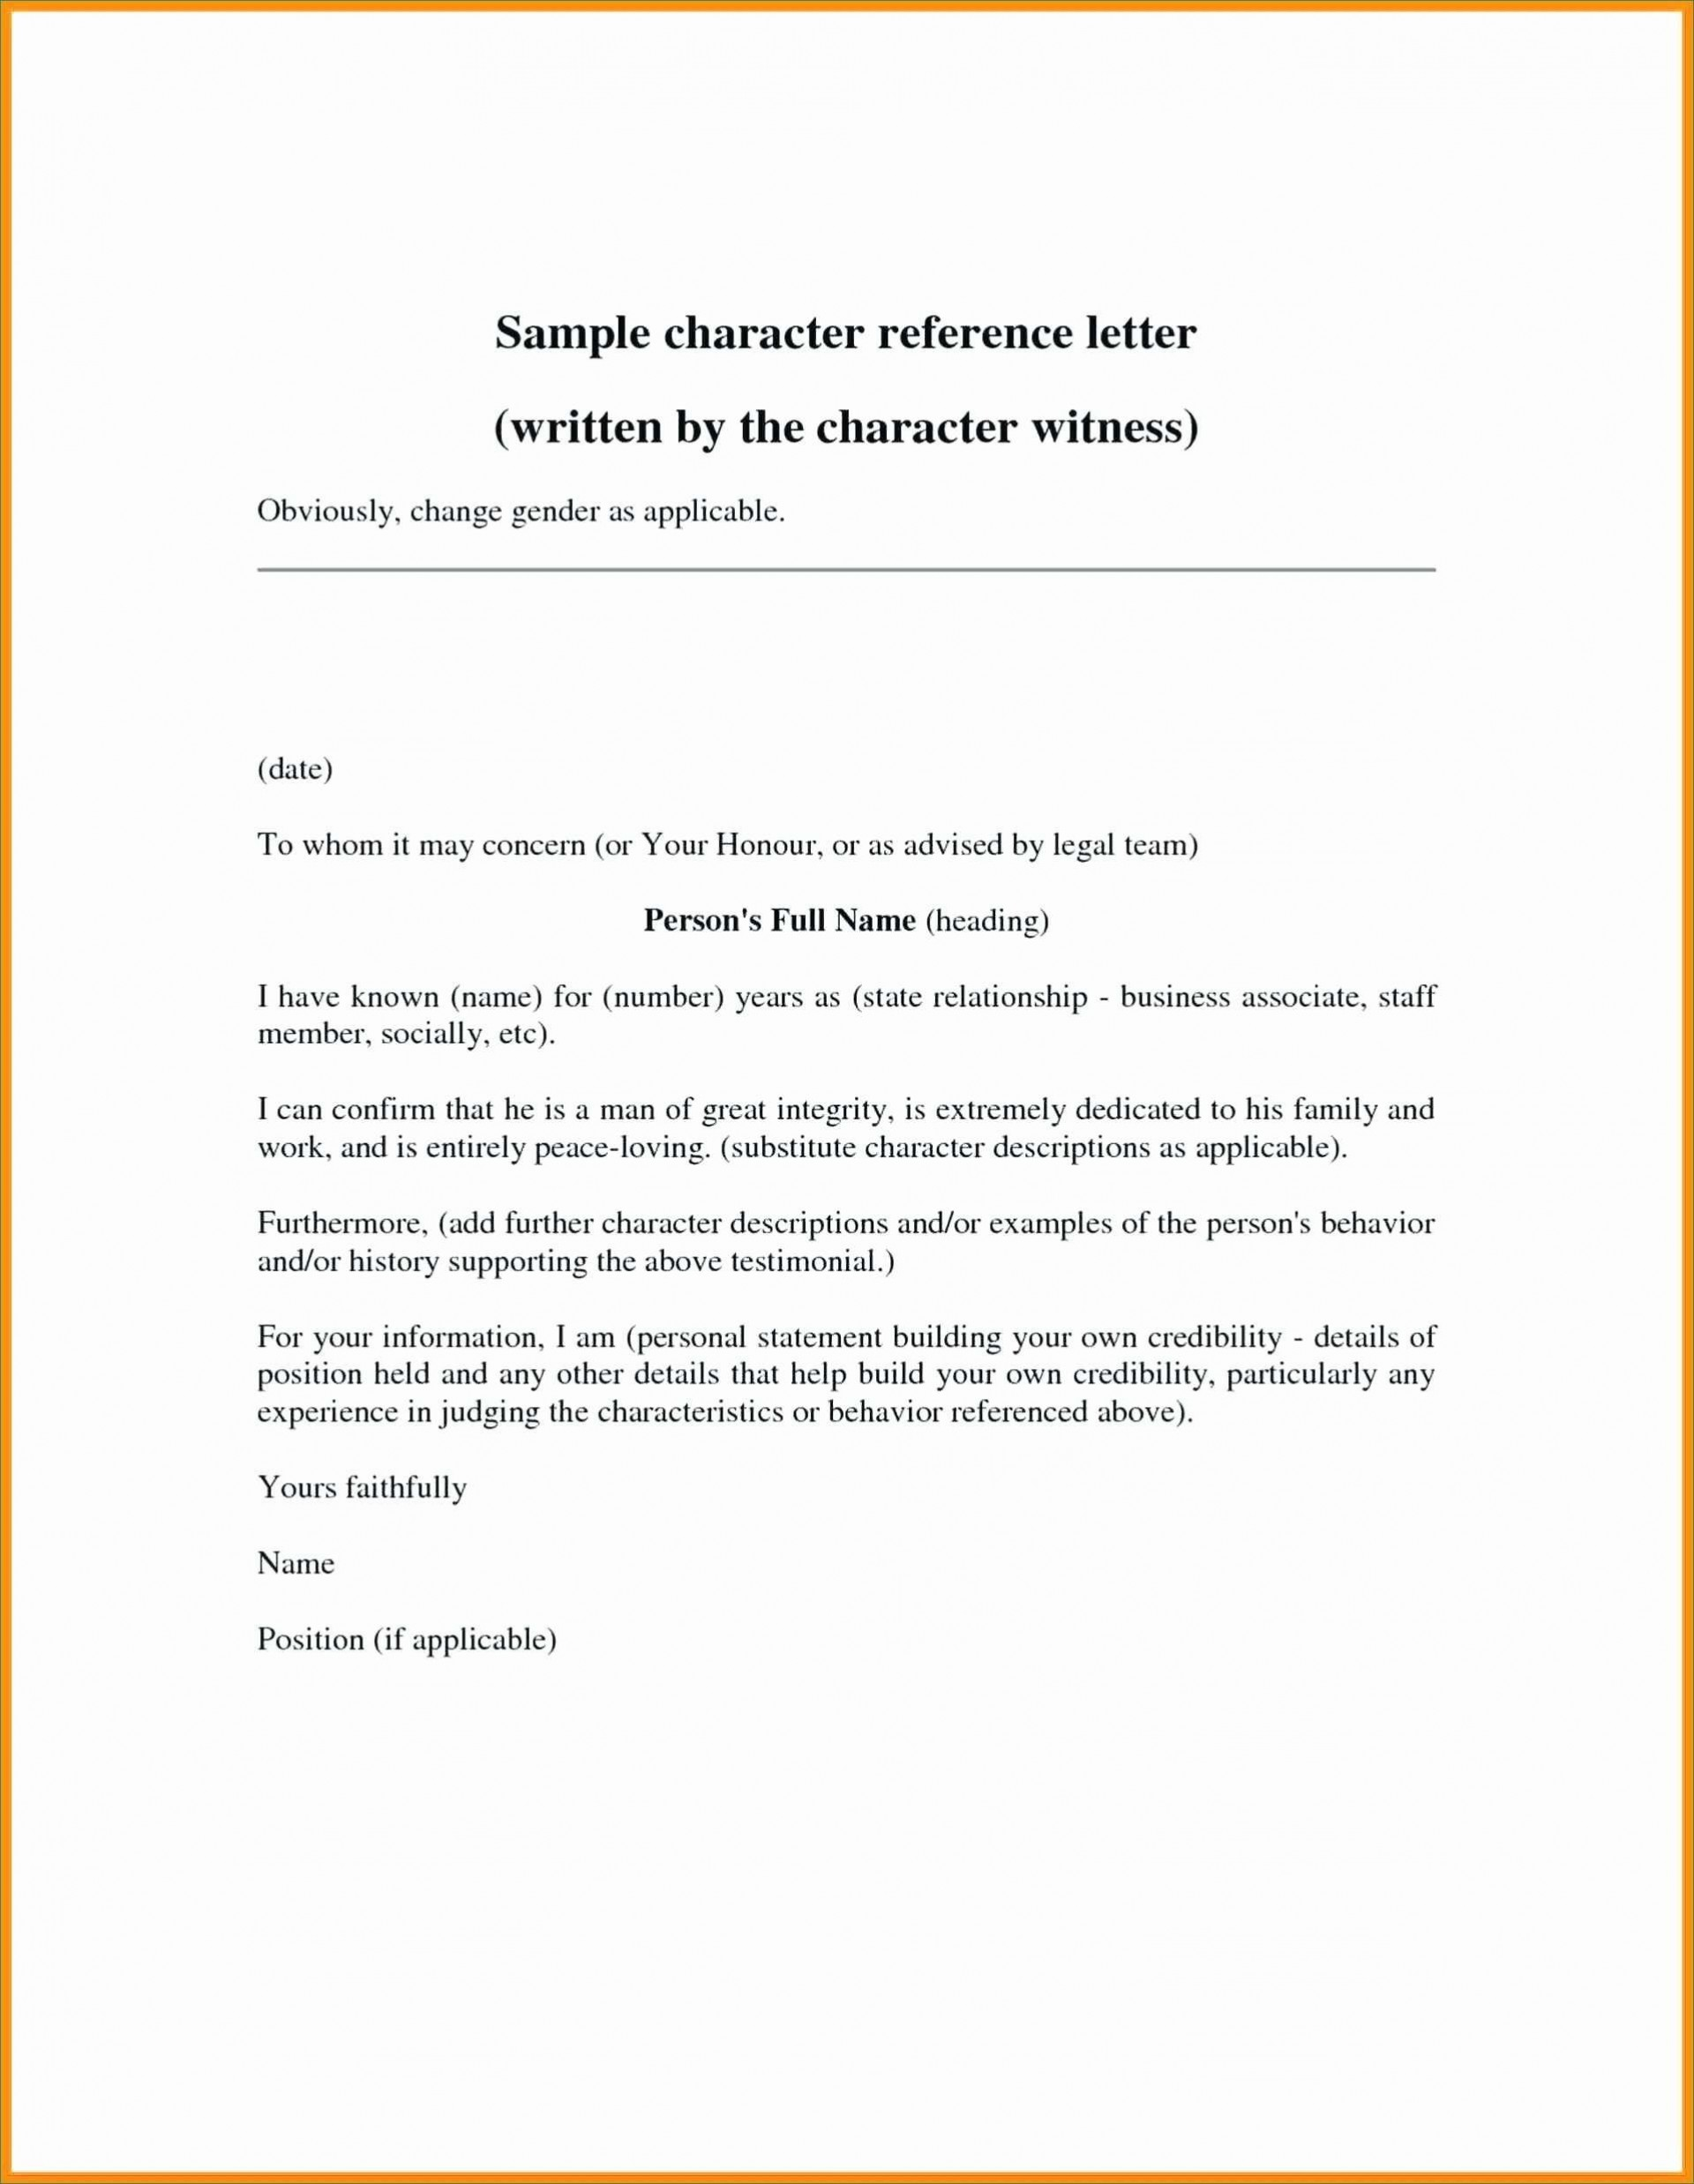 007 Wonderful Professional Reference Letter Template Word Highest Clarity 1920